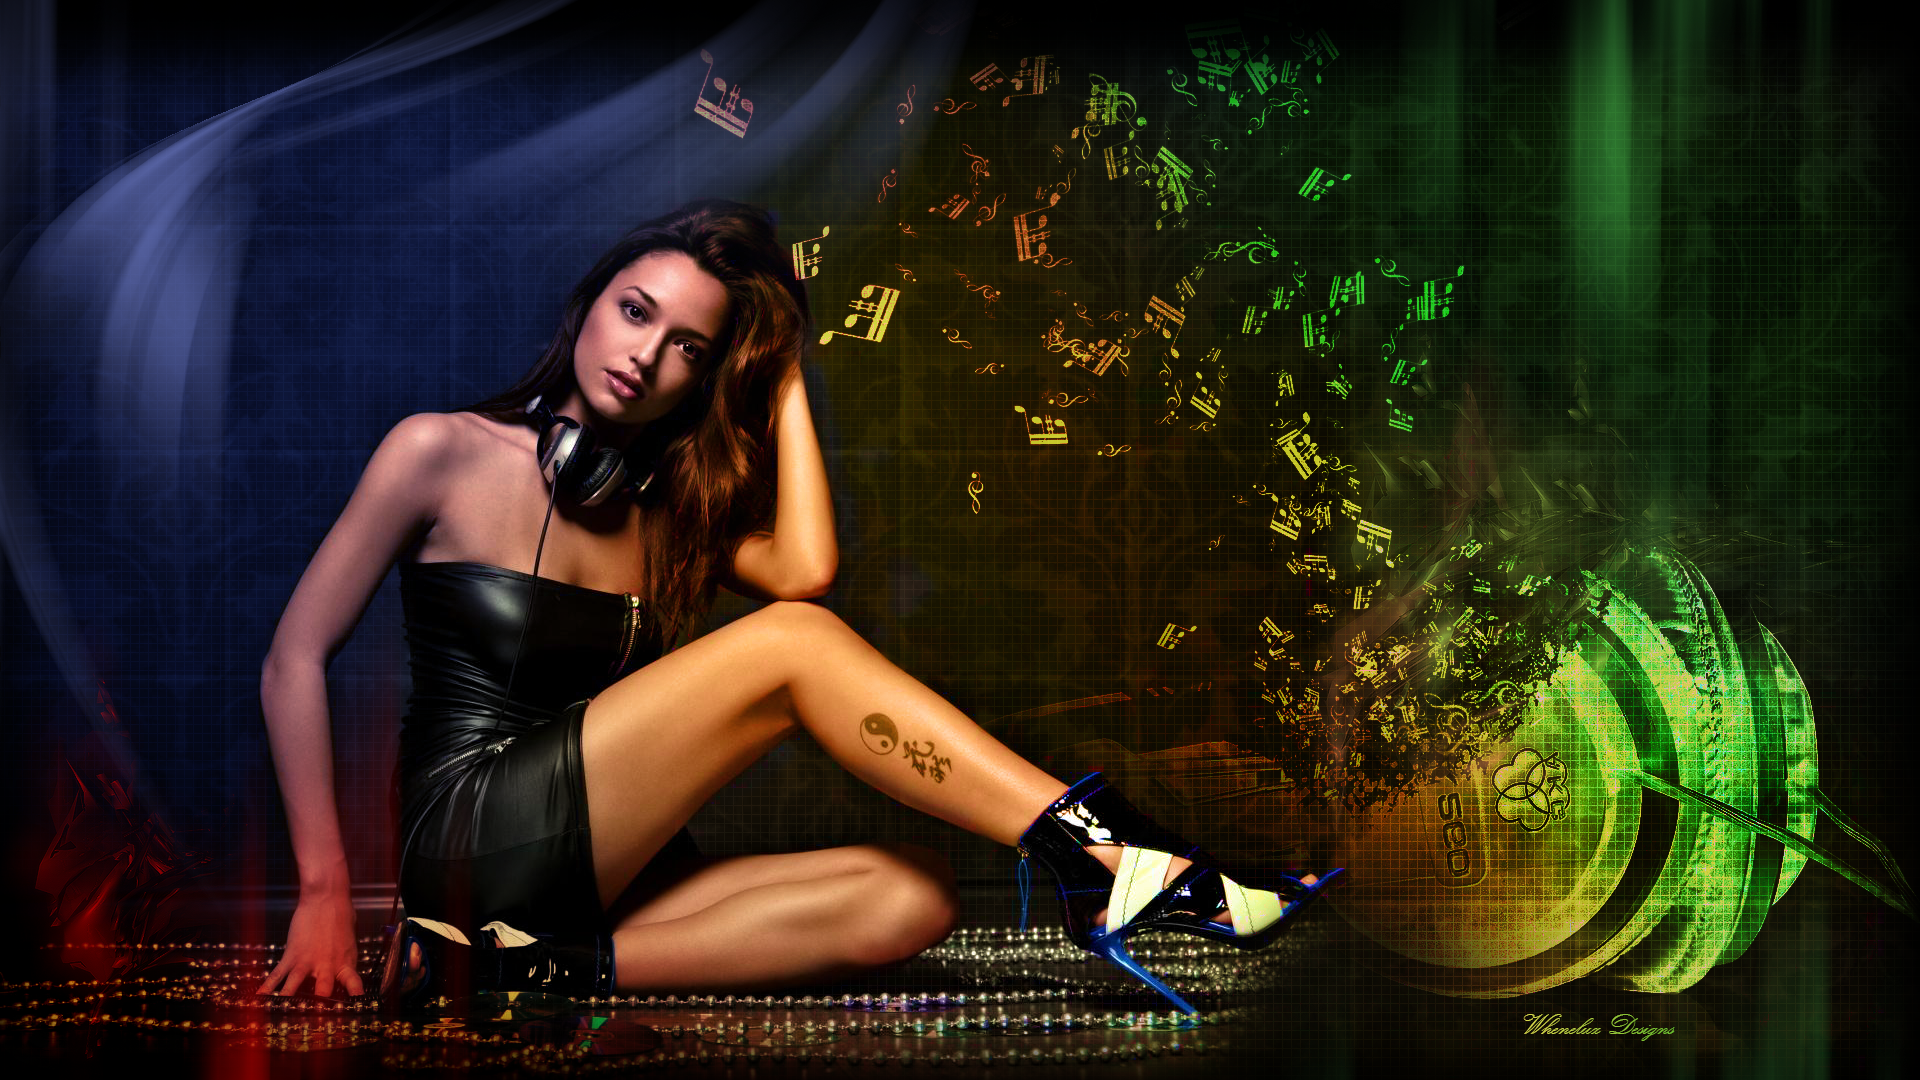 DT Sign Ups Female_dj_wallpaper_1920x1080_by_whenelux-d6gabxt